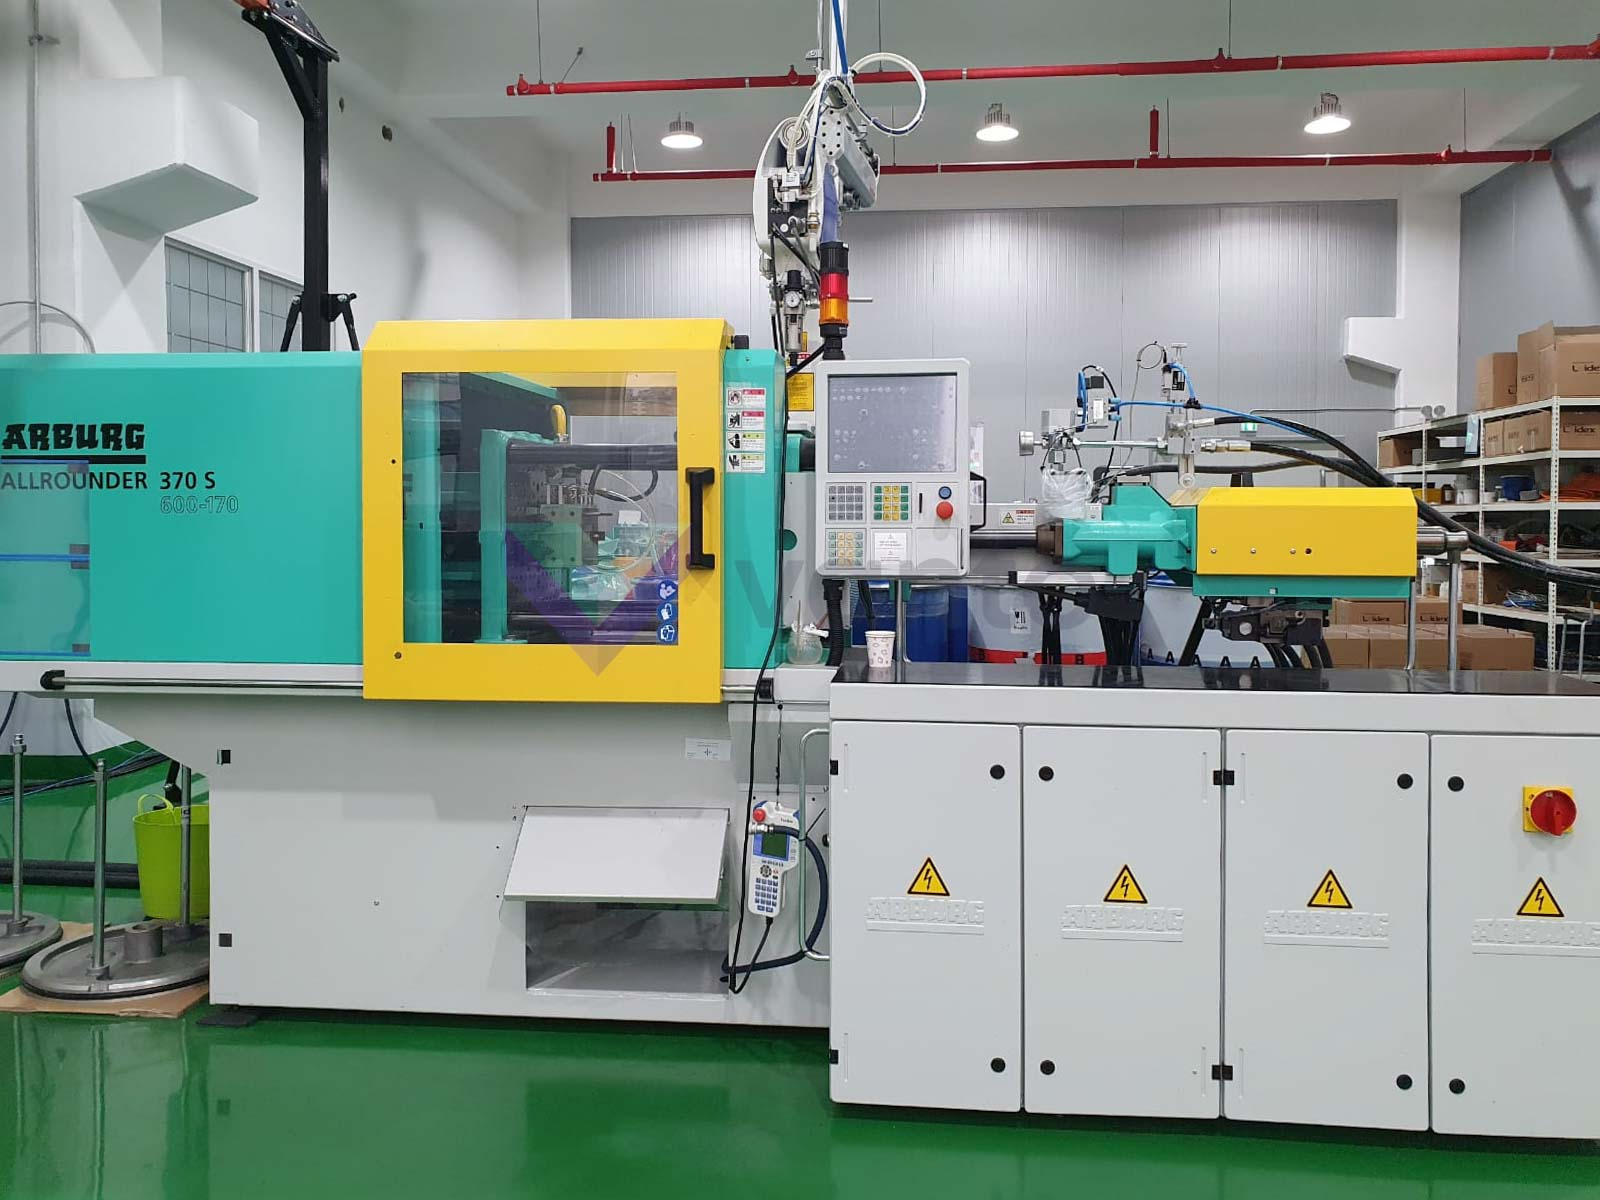 ARBURG 370 S 600-170 ALLROUNDER 60t injection molding machine (2016) id10490